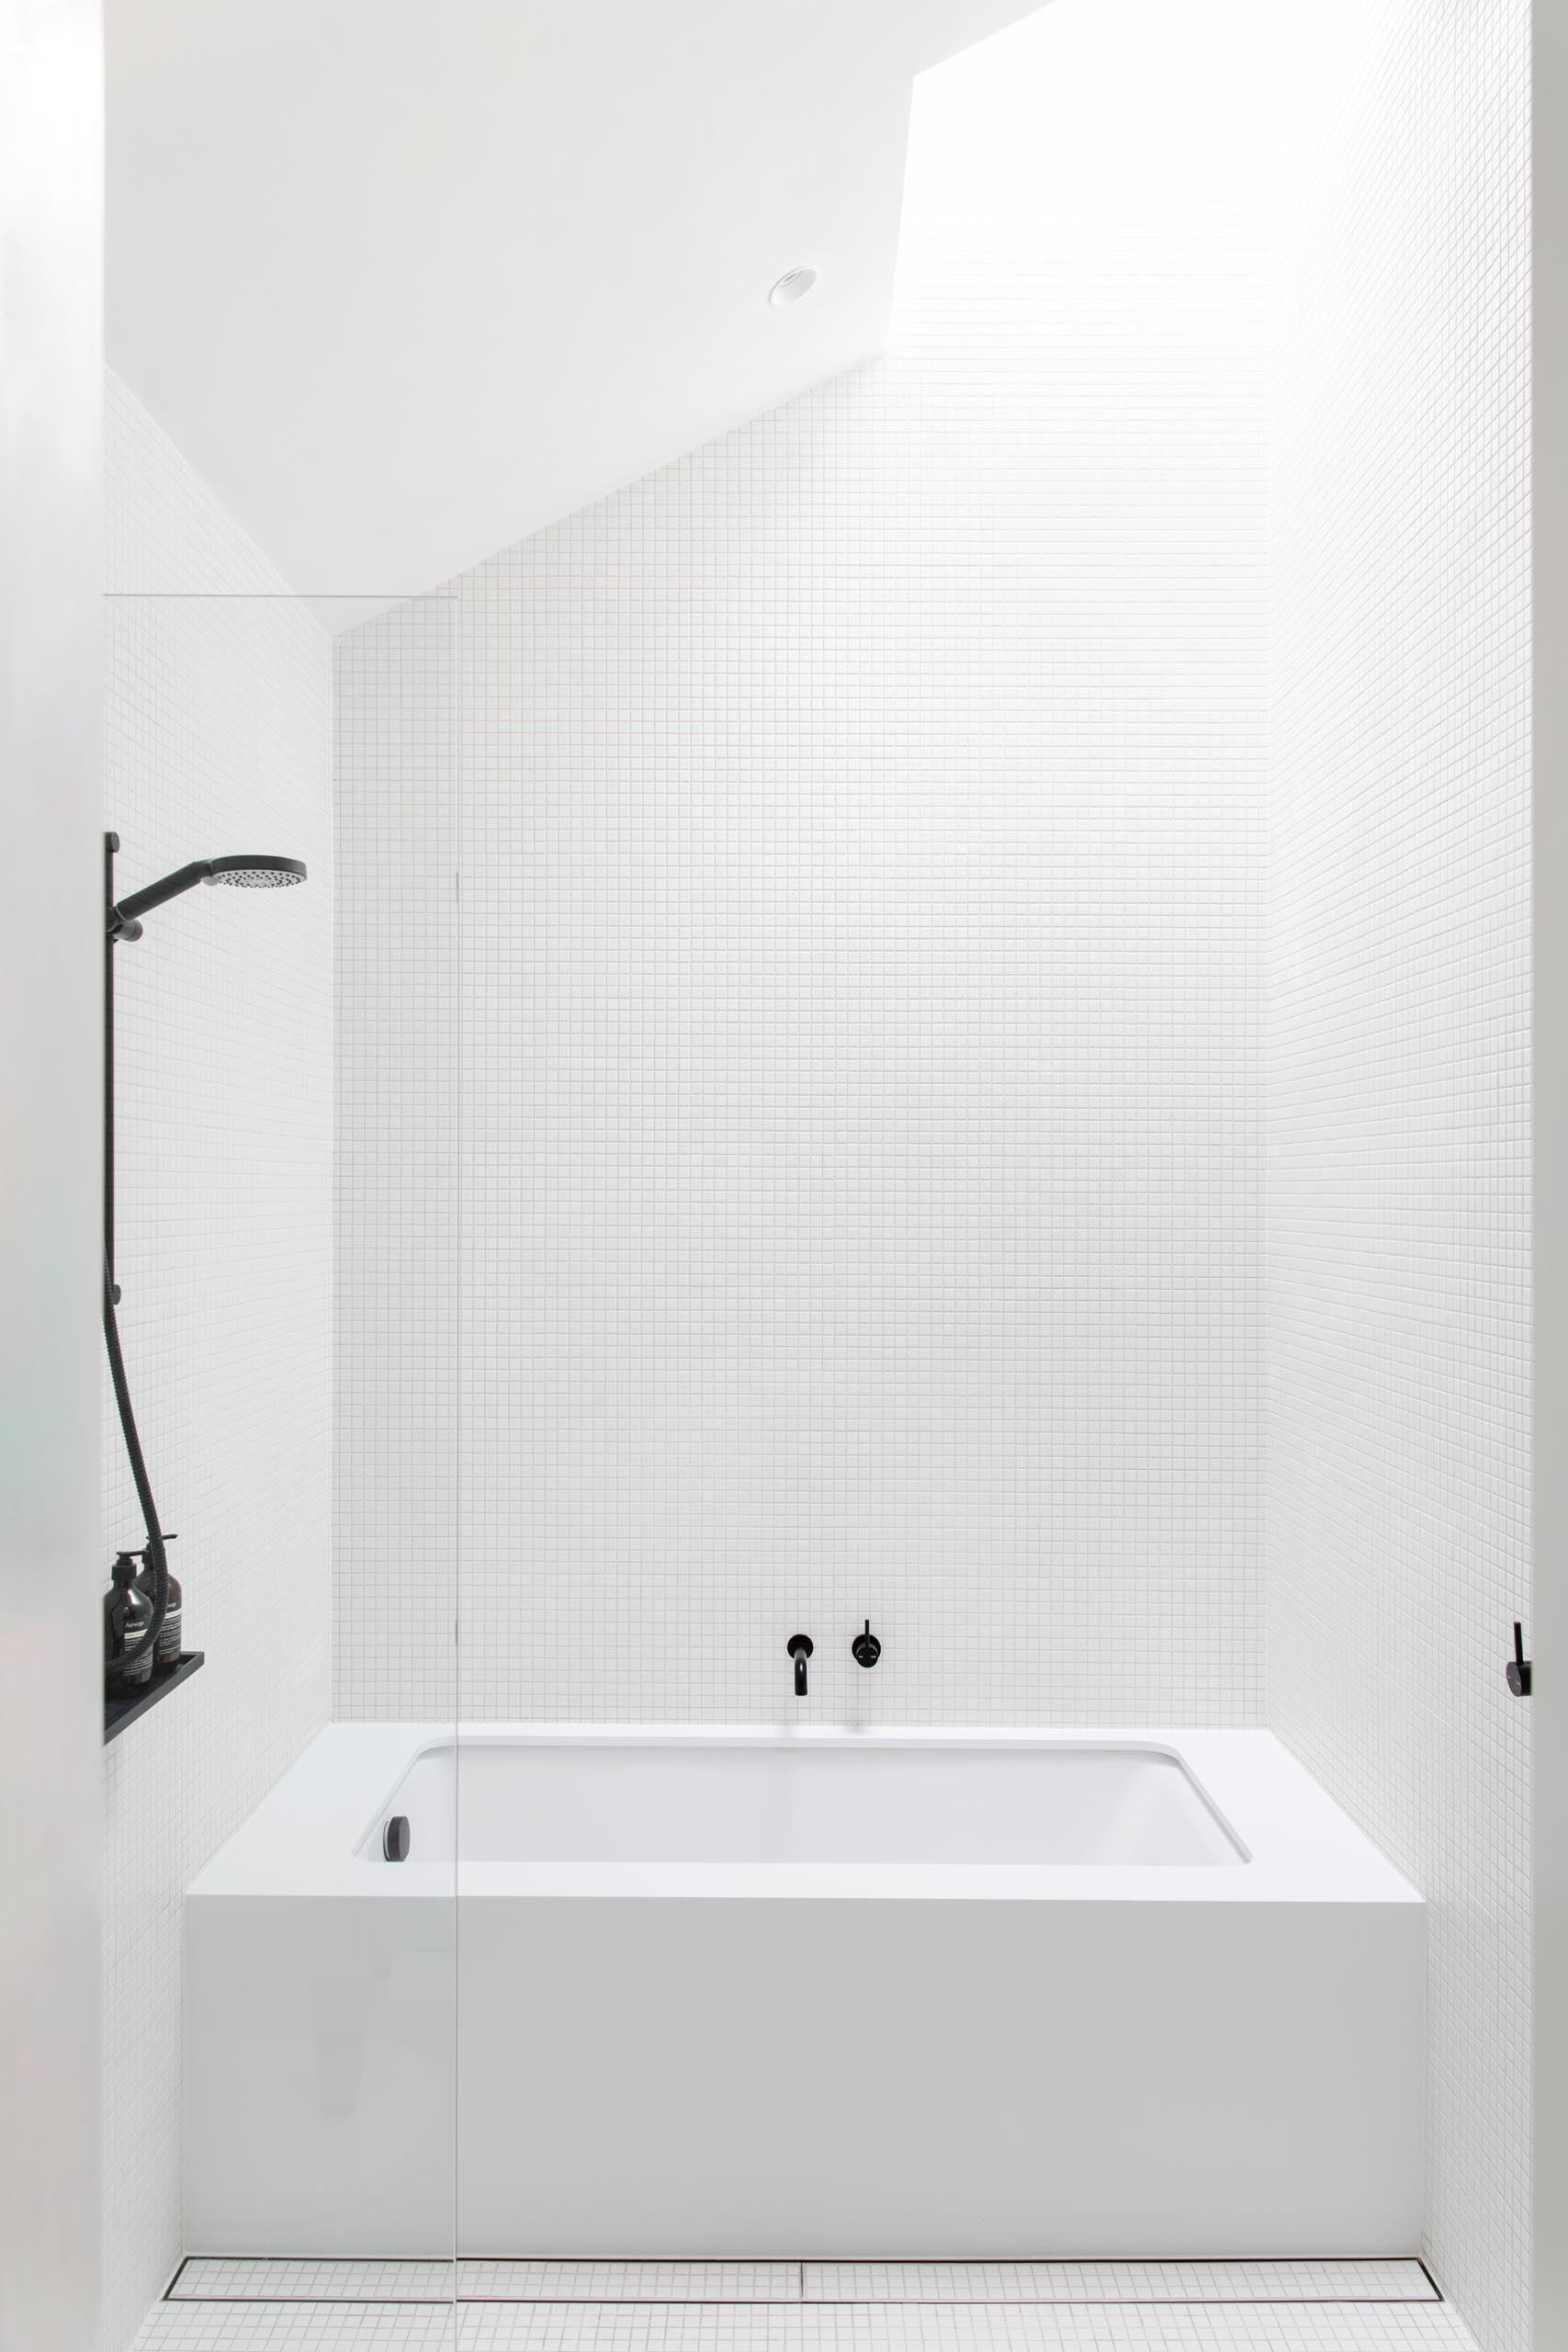 A white bathroom with black hardware accents features small square tiles, a built-in bathtub, and a skylight.